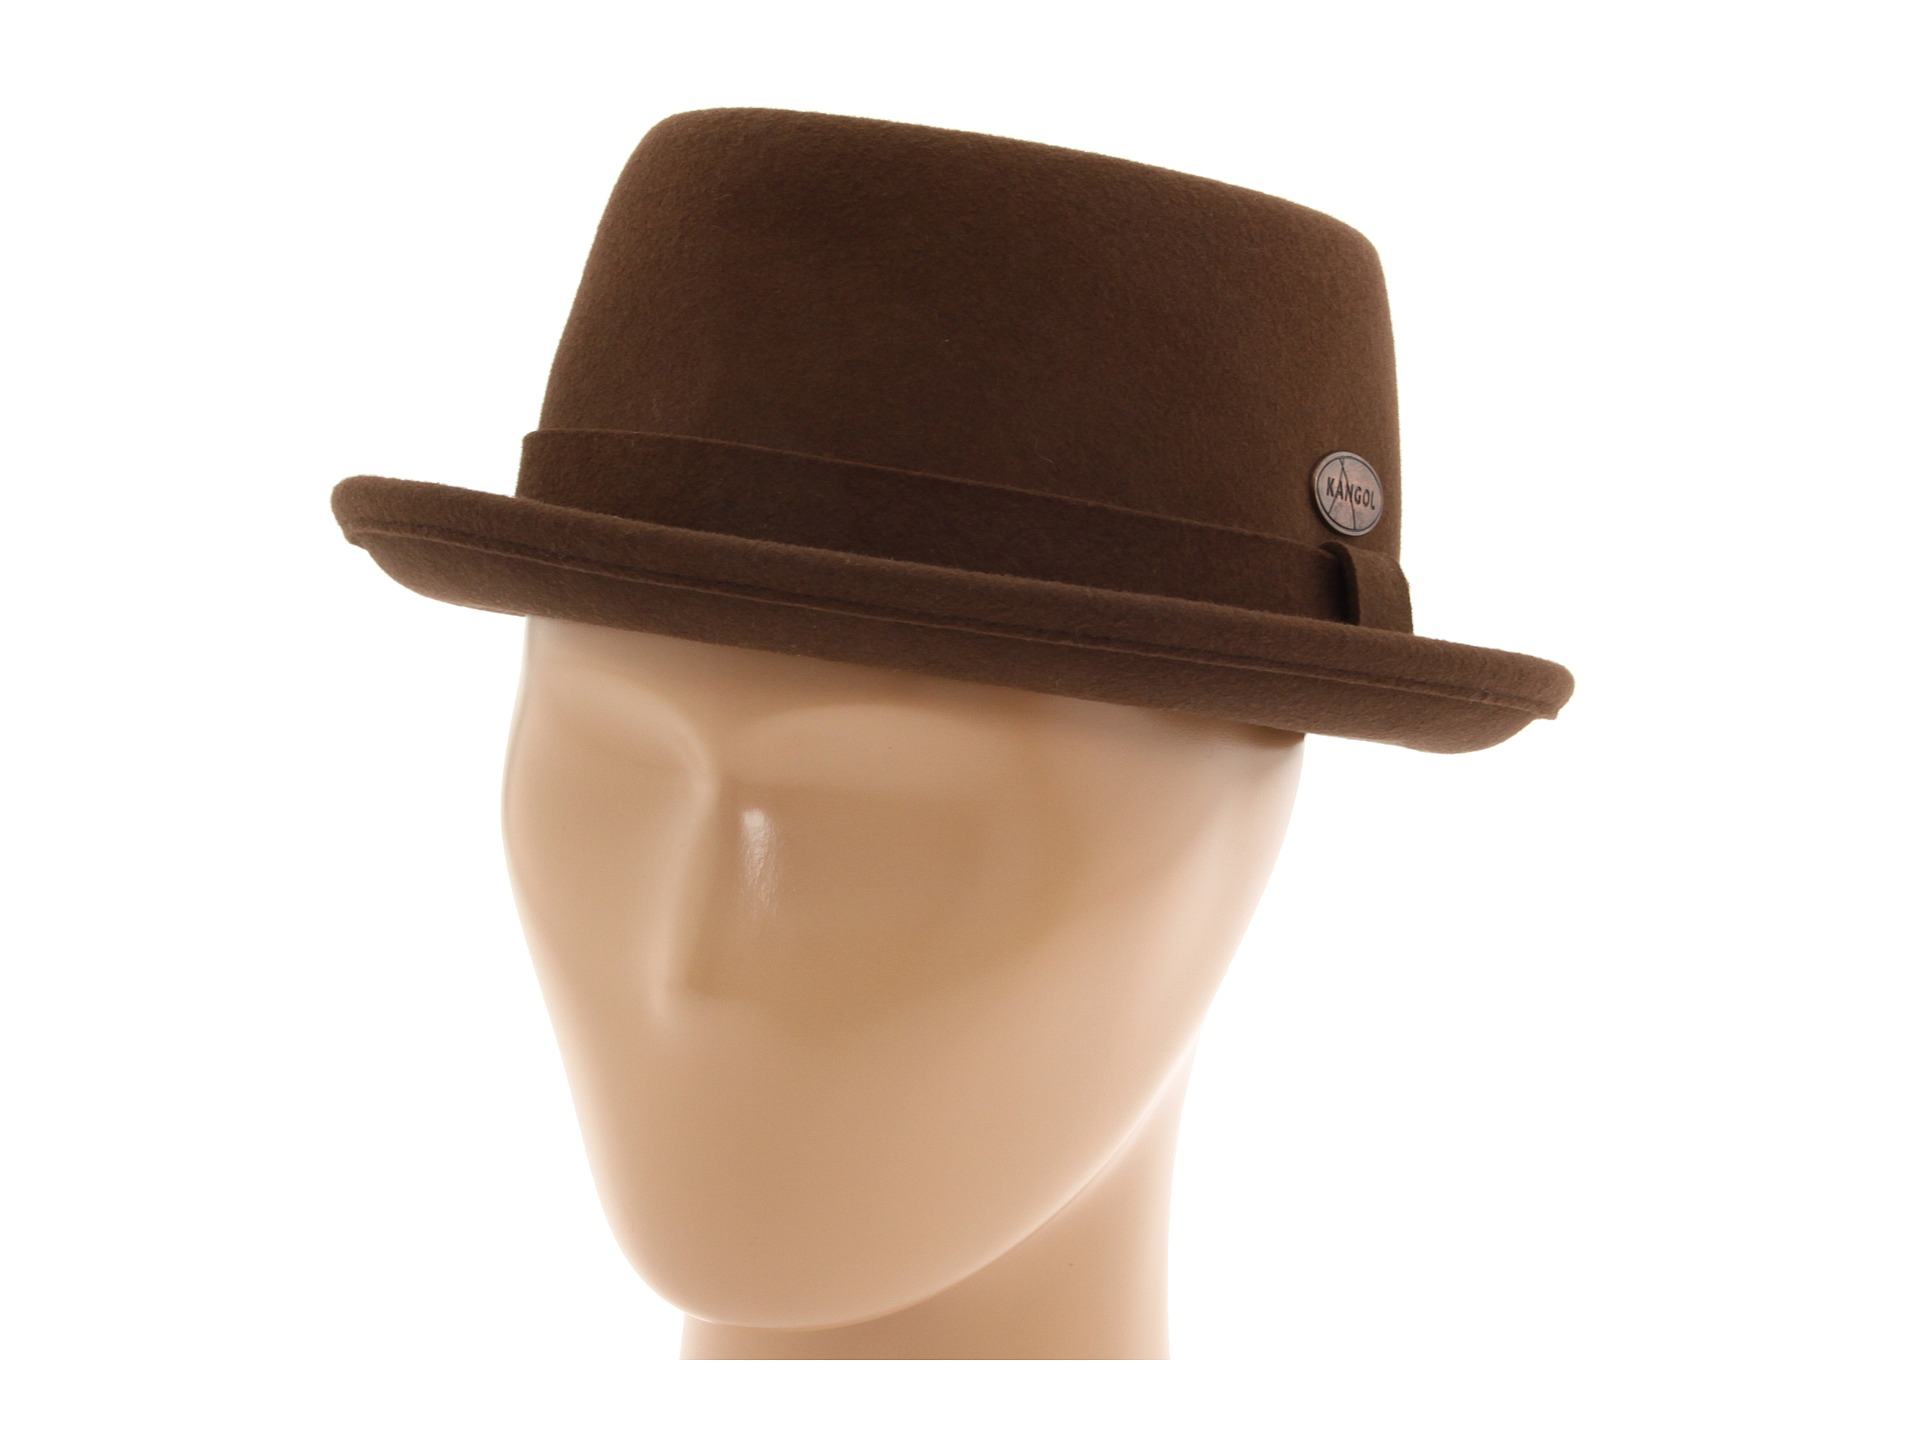 Lyst - Kangol Lite Felt Pork Pie in Brown for Men 619b02594a12